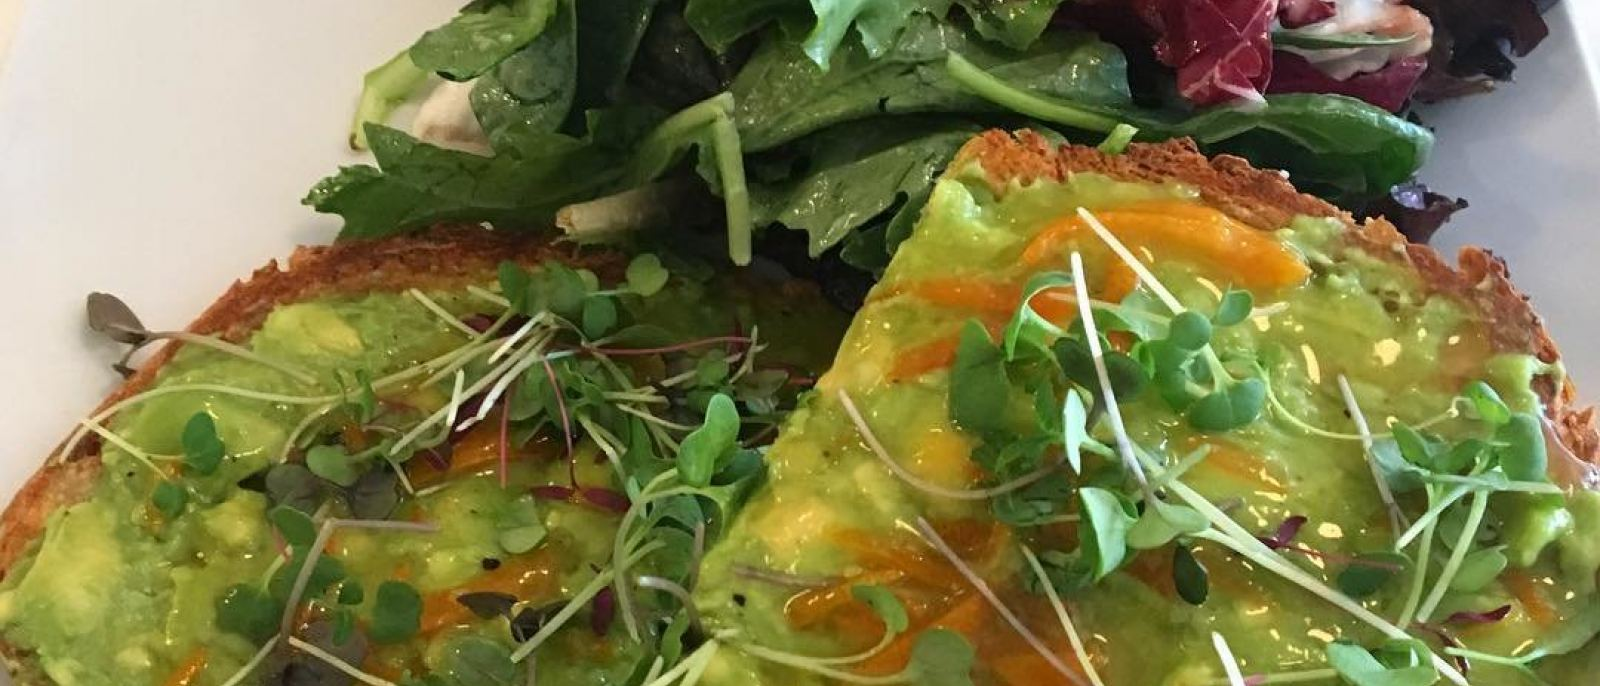 Kumquat avocado toast at Sweetsalt | Instagram by @avocadokale